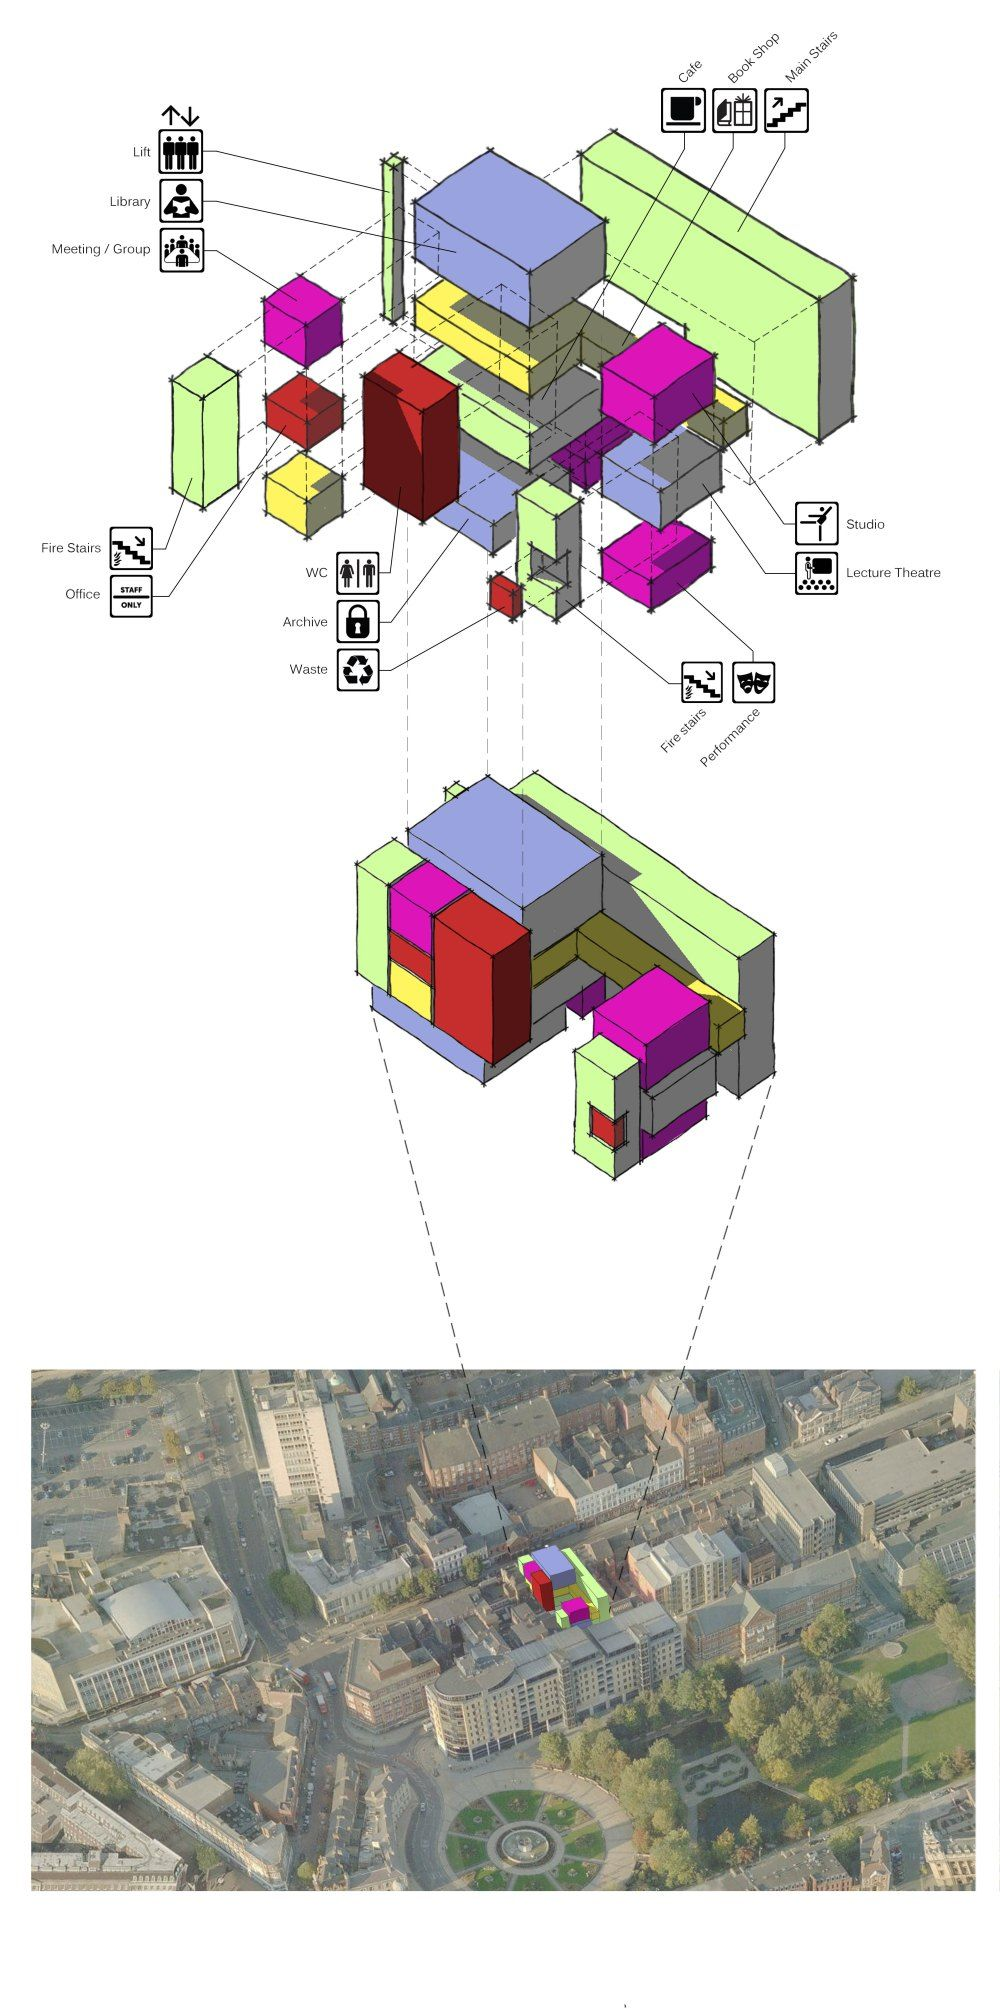 schedule of accommodation - Google Search | Diagram ...